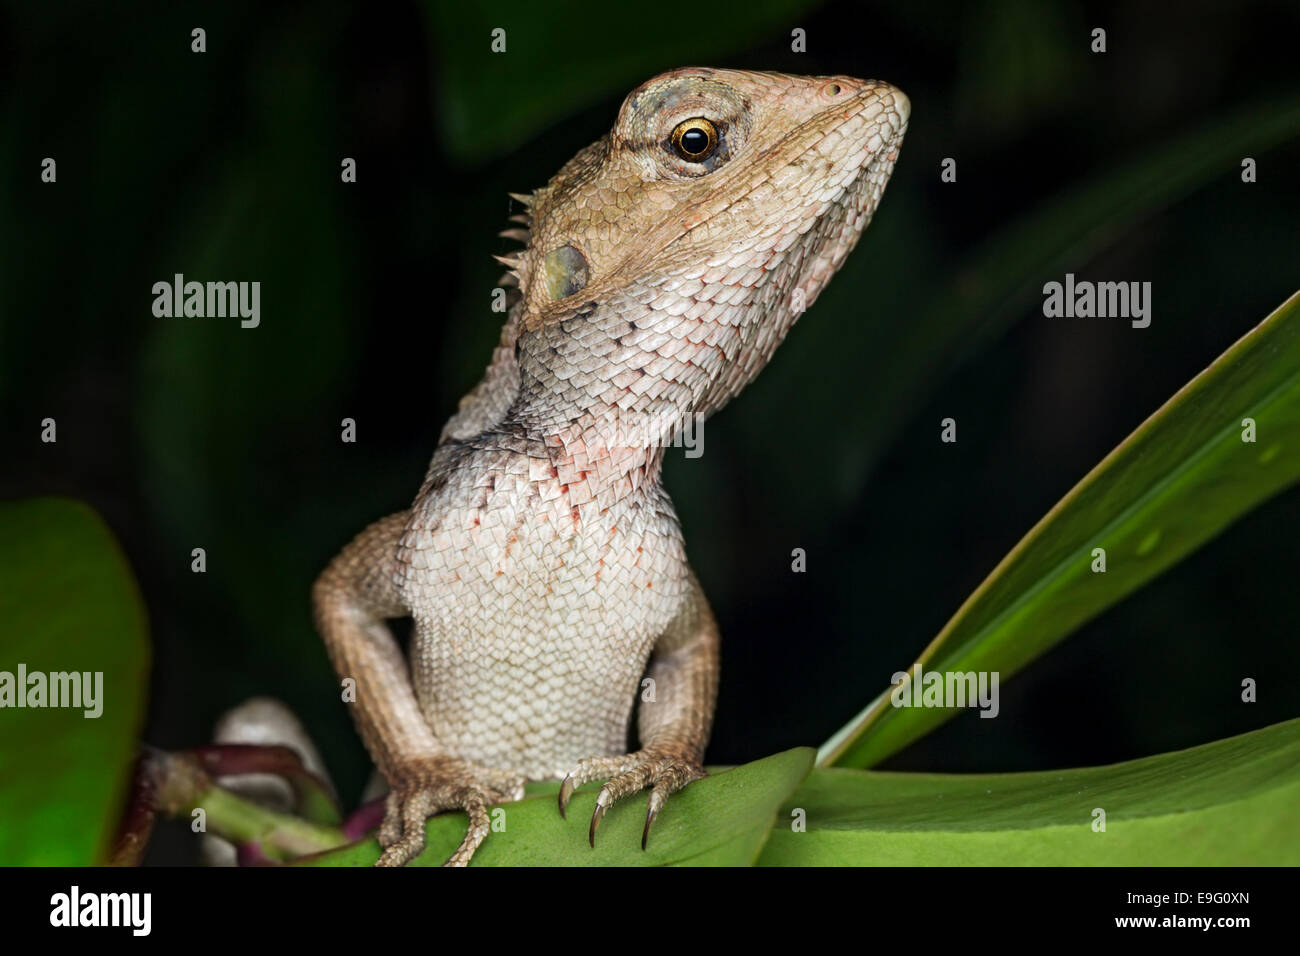 Changeable lizard (Calotes versicolor) - Stock Image